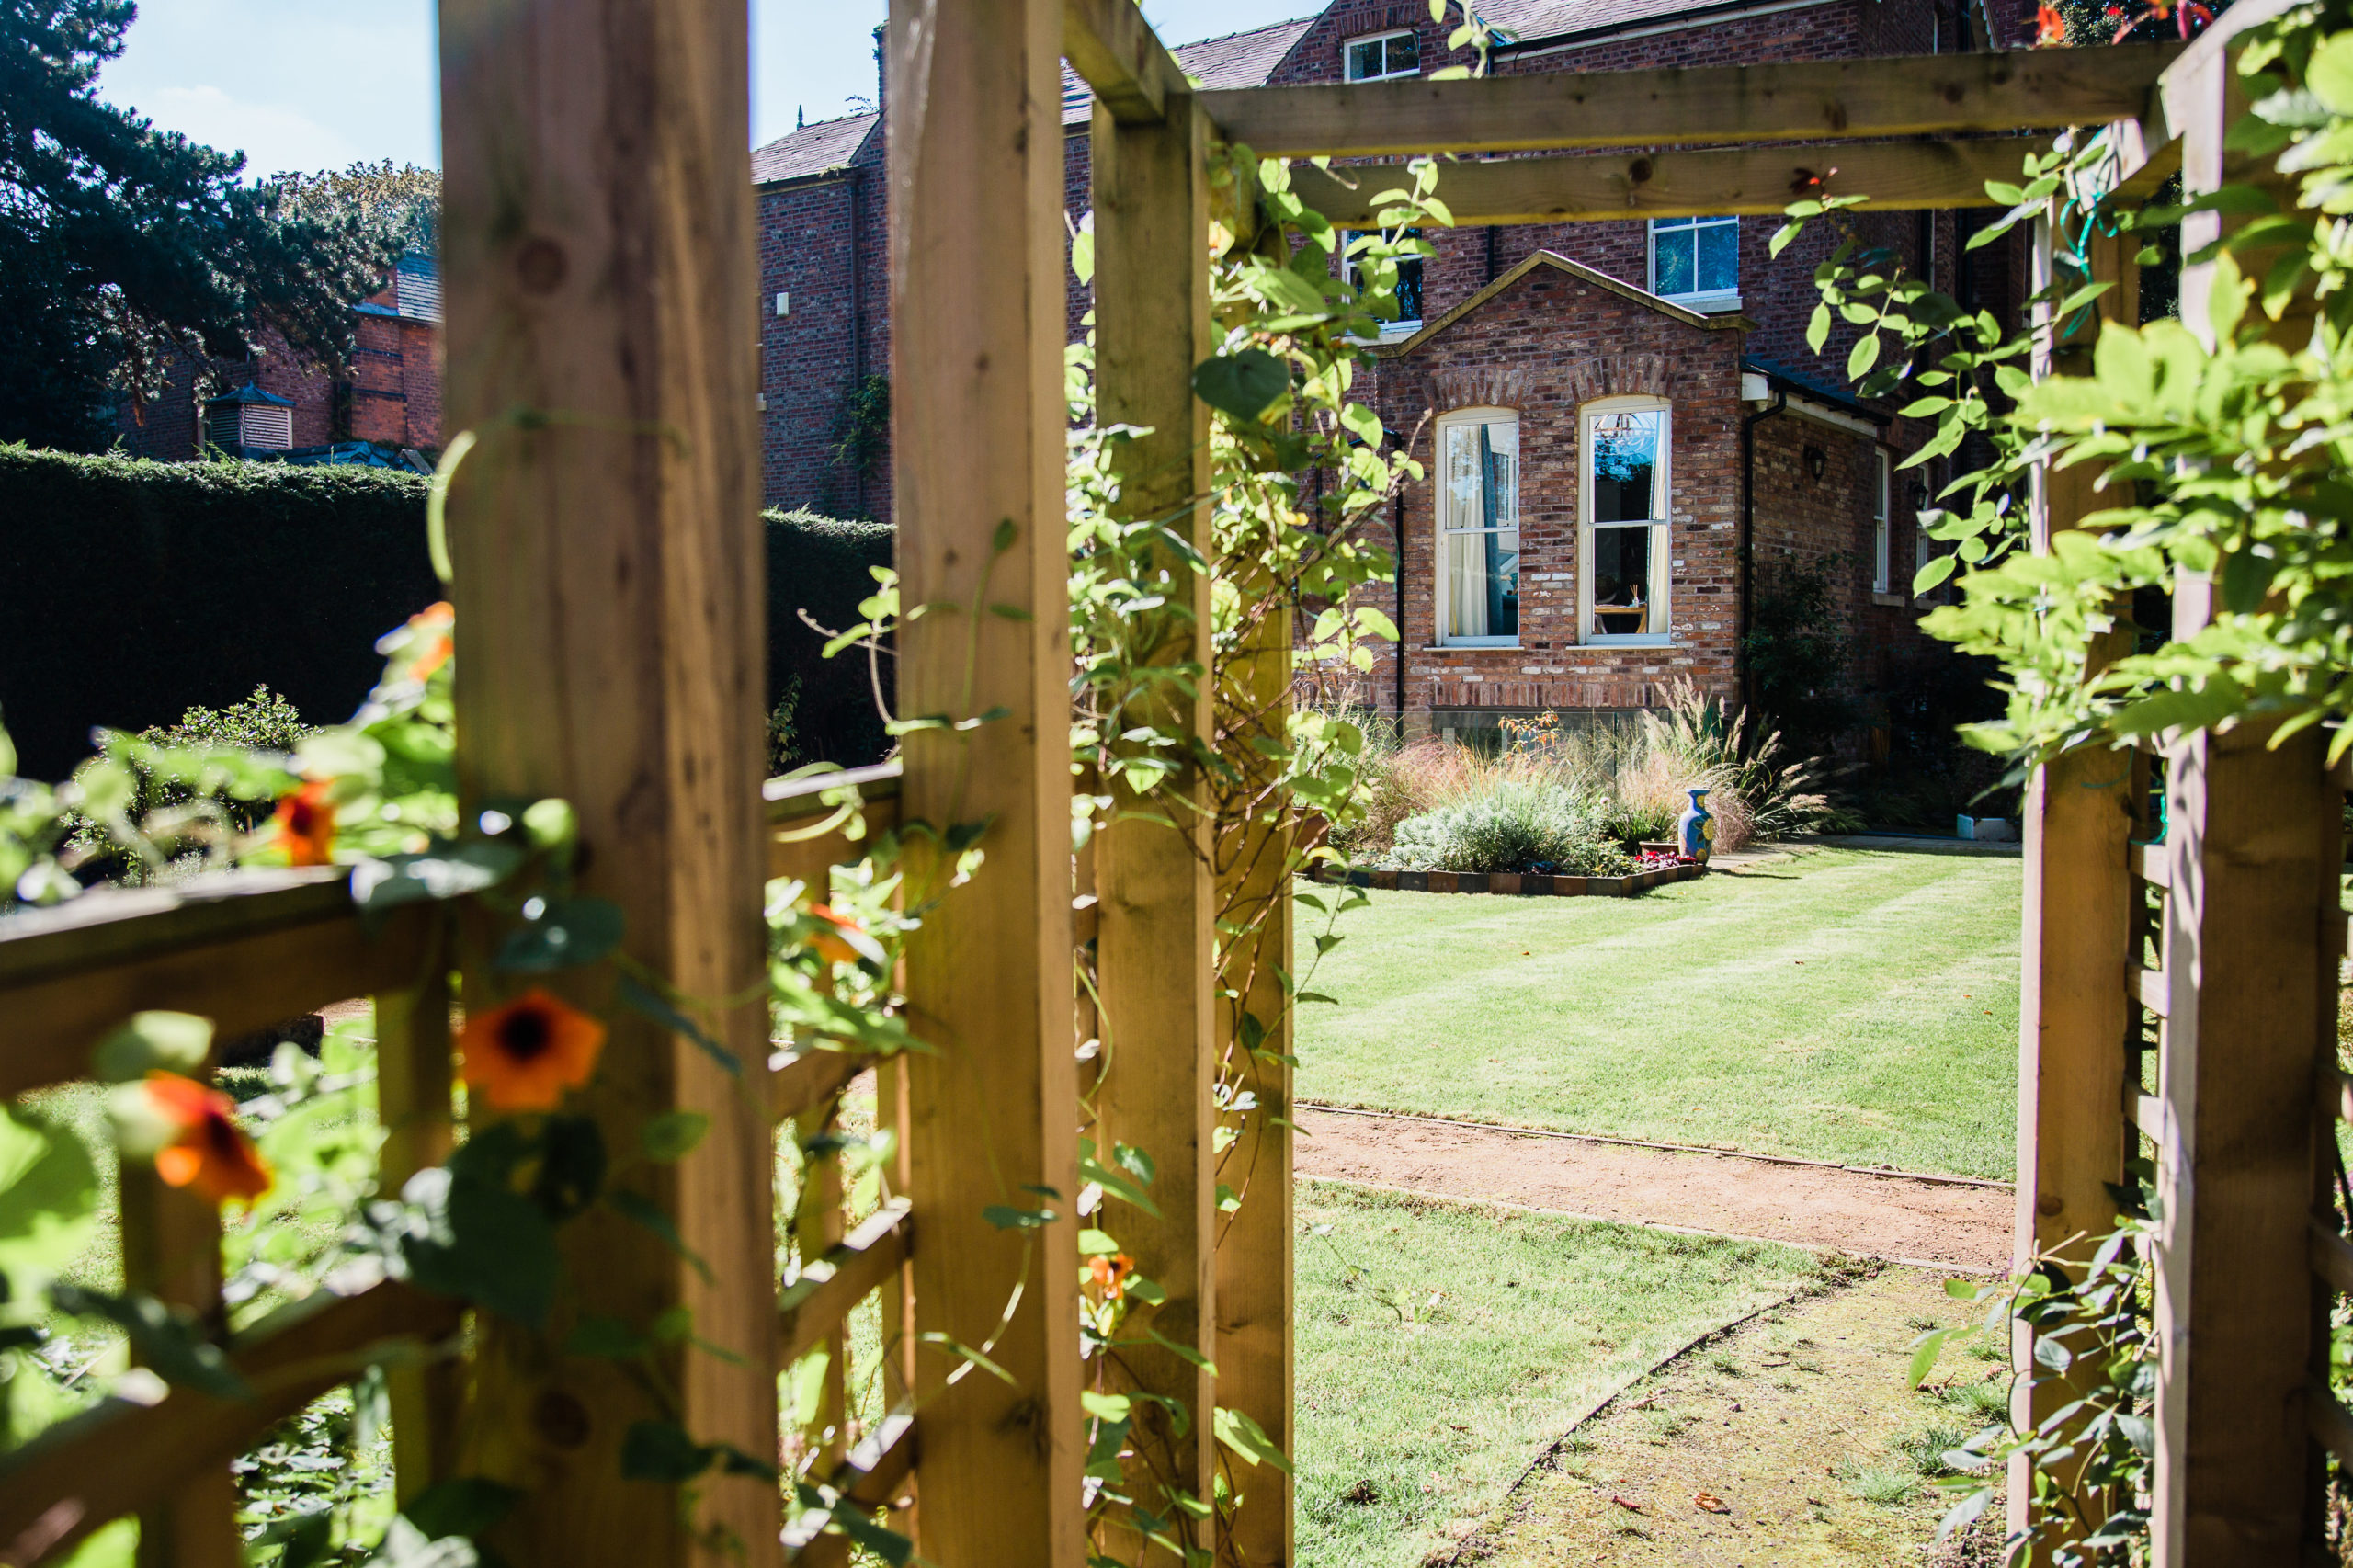 Wildlife friendly family garden – Cheadle Hulme